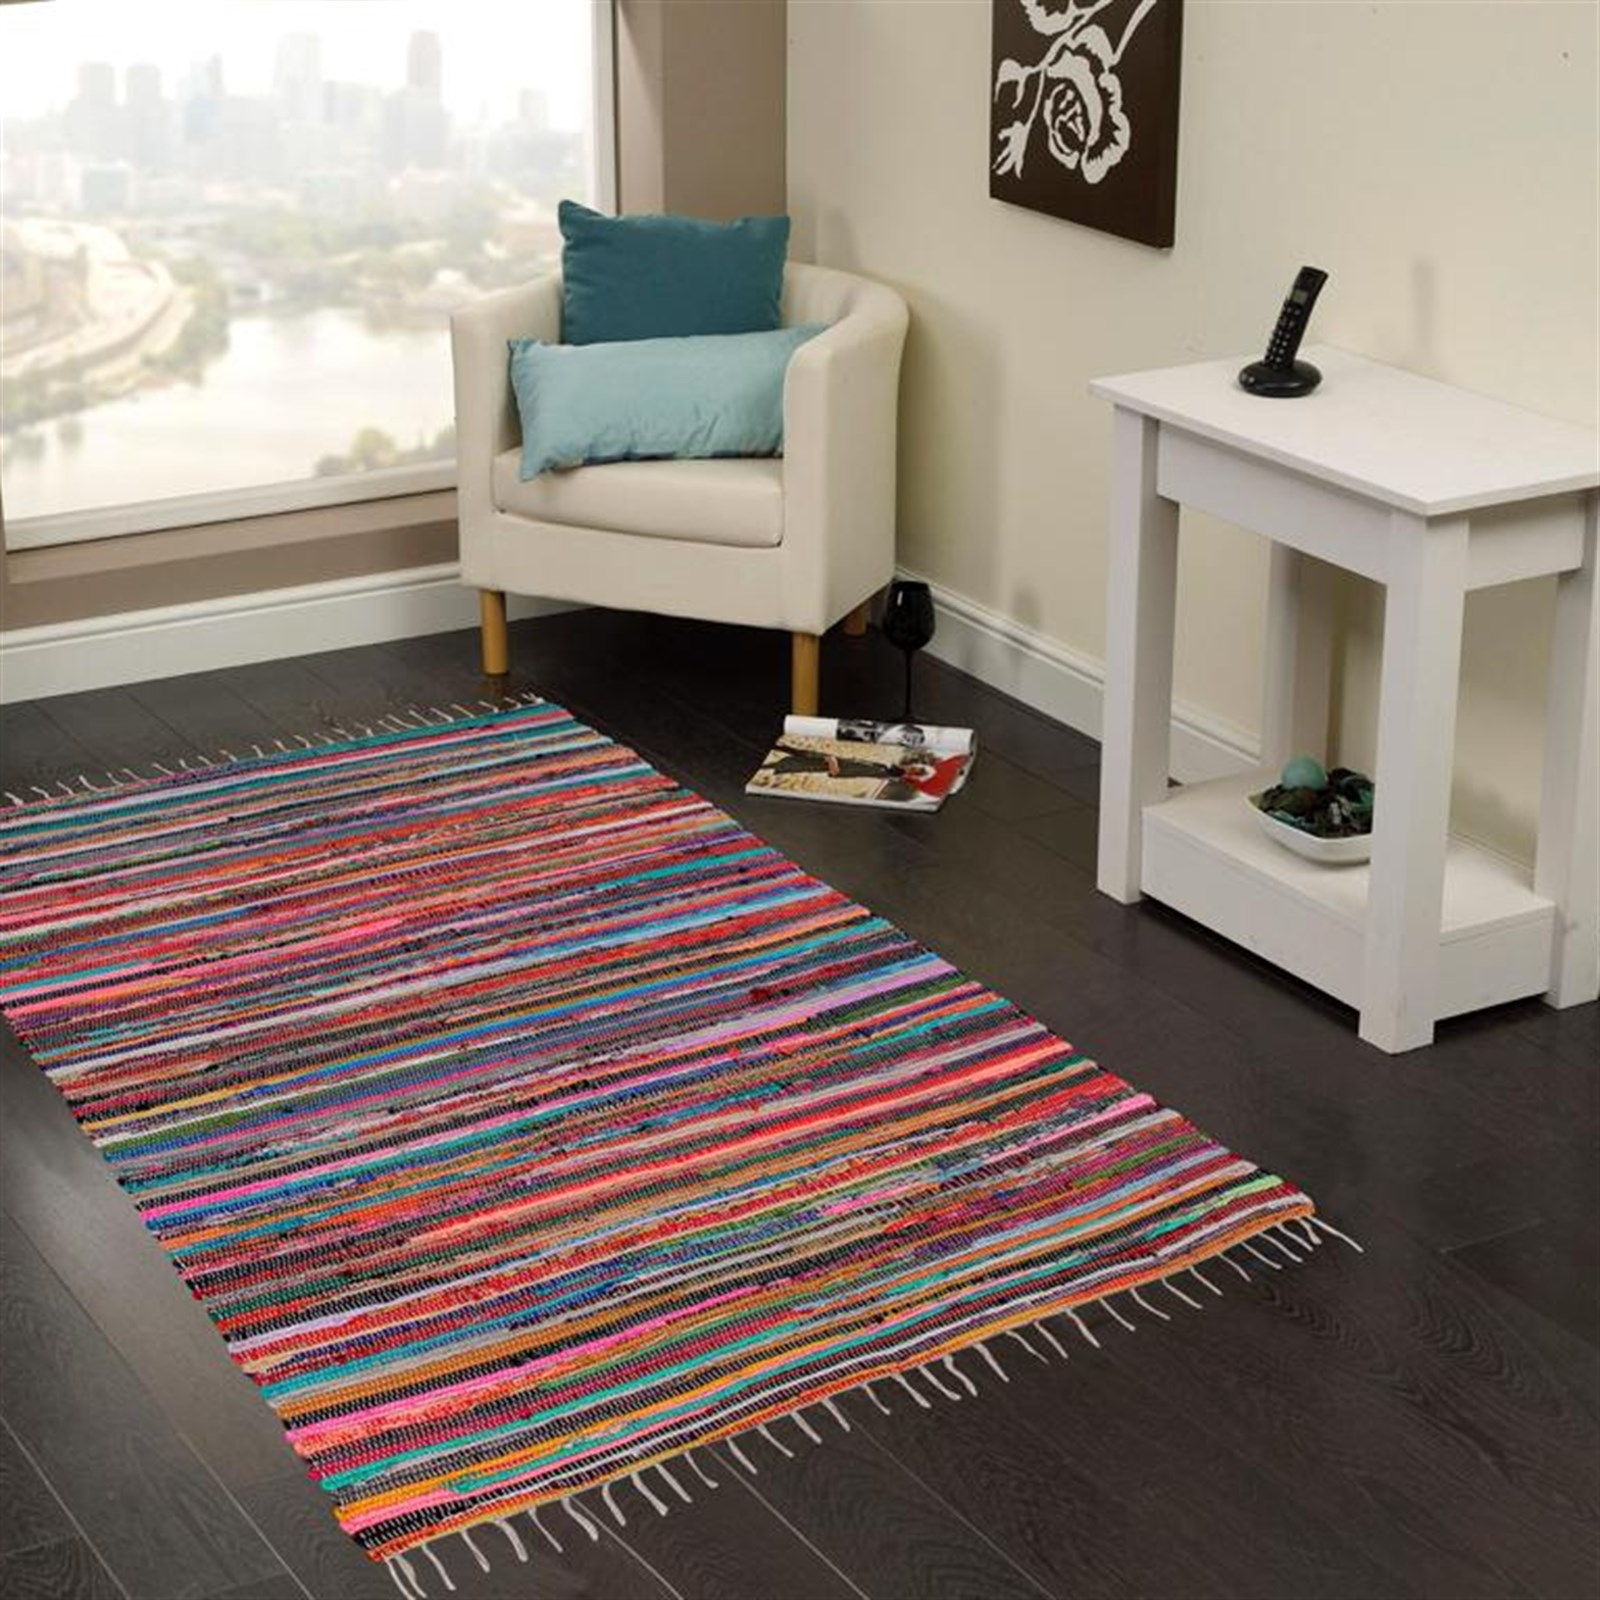 100% Recycled Cotton Rug 4'x6' Only $29.99 w/ Free Shipping